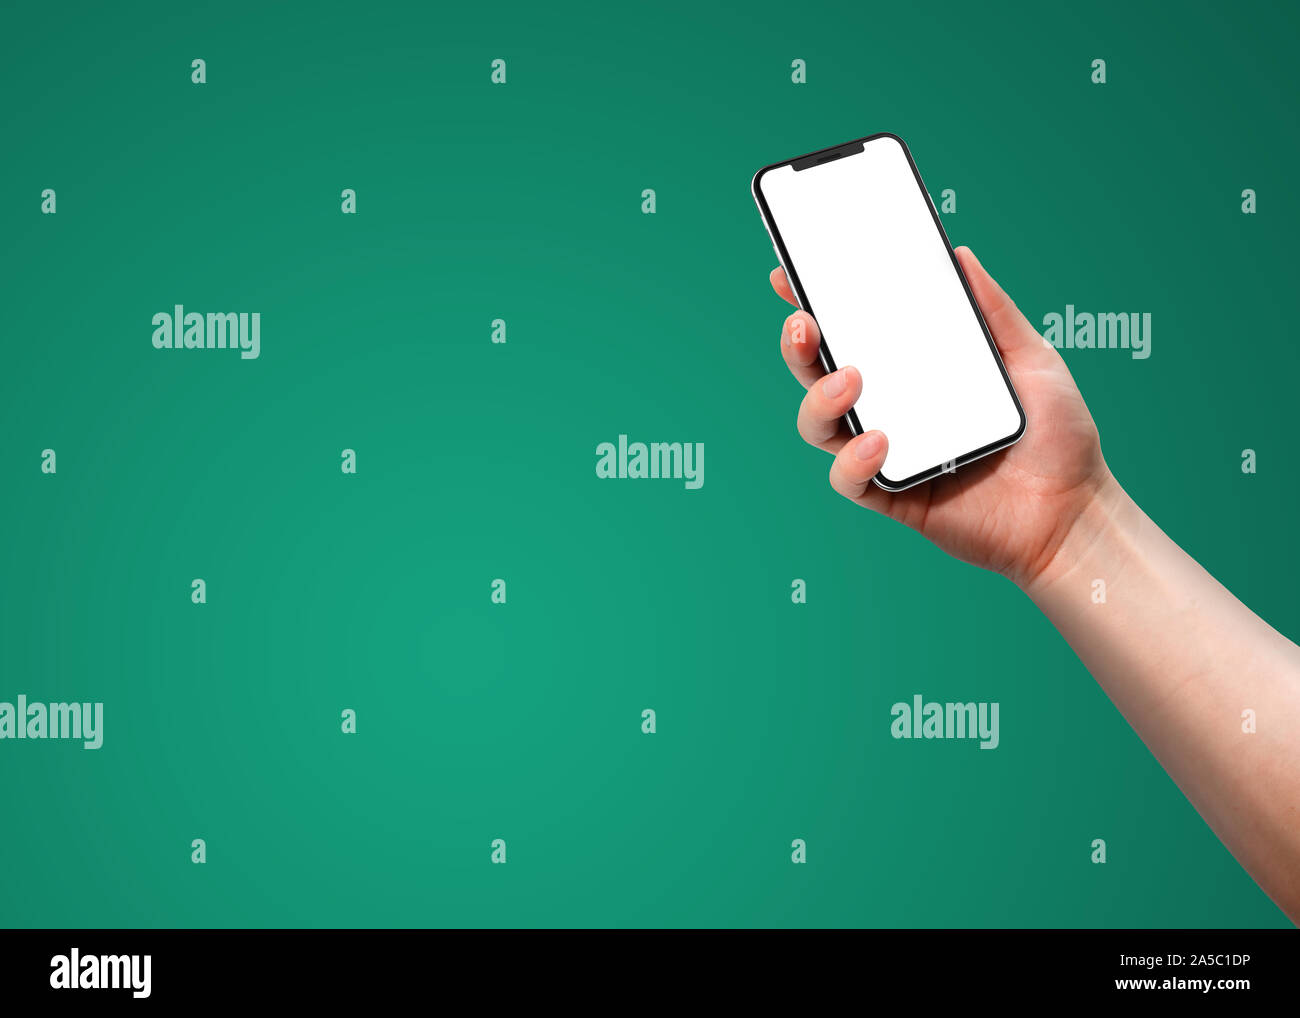 Green Screen Iphone High Resolution Stock Photography And Images Alamy